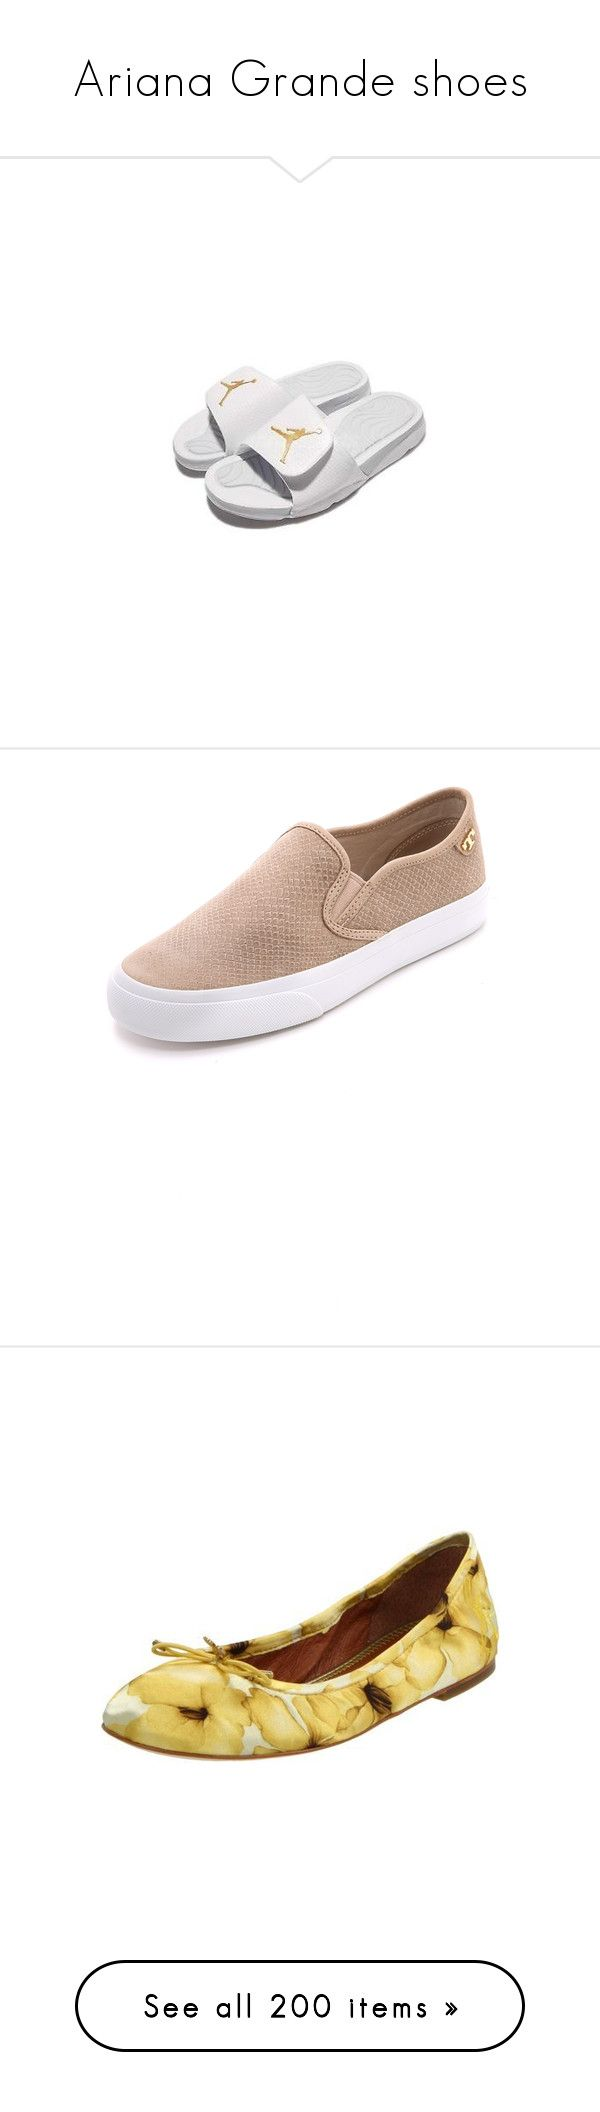 """""""Ariana Grande shoes"""" by marilia13 ❤ liked on Polyvore featuring shoes, sandals, flats, slides, puma footwear, slip on sandals, slip on flats, flat heel shoes, flat heel sandals and white sandals"""